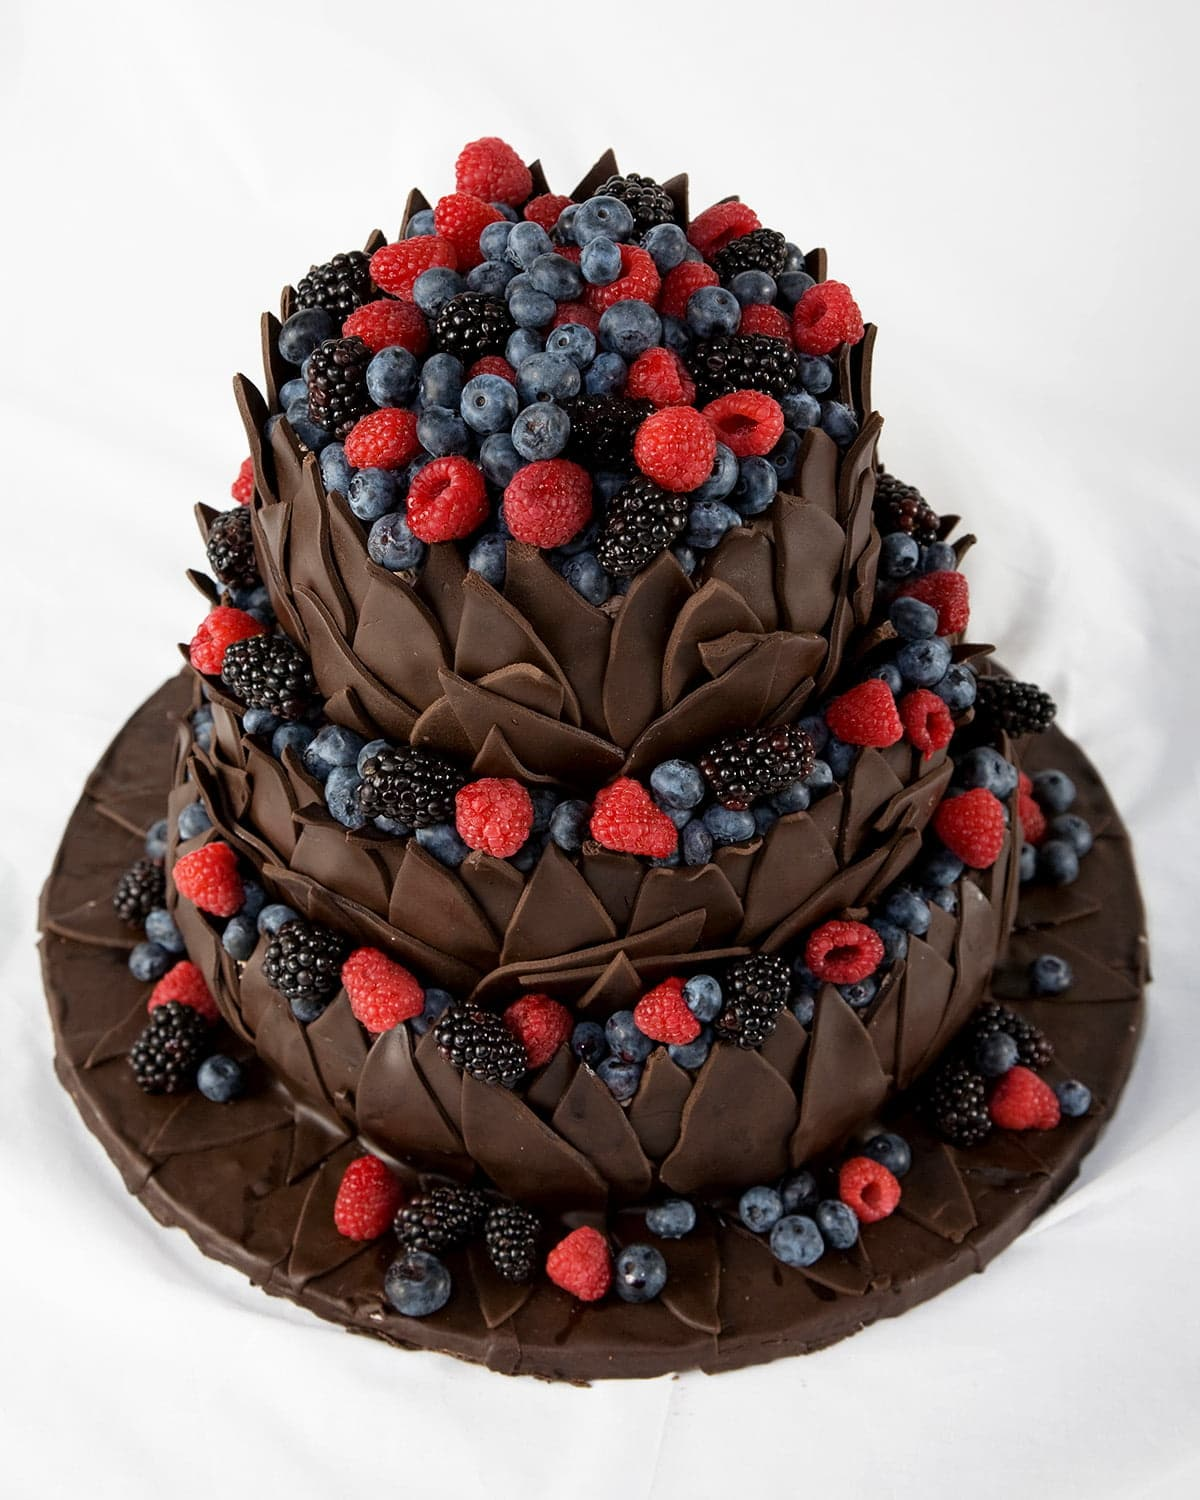 A 3 tiered cake, covered in chocolate leaves.  The top of each tier is covered in blackberries, raspberries, and blueberries.